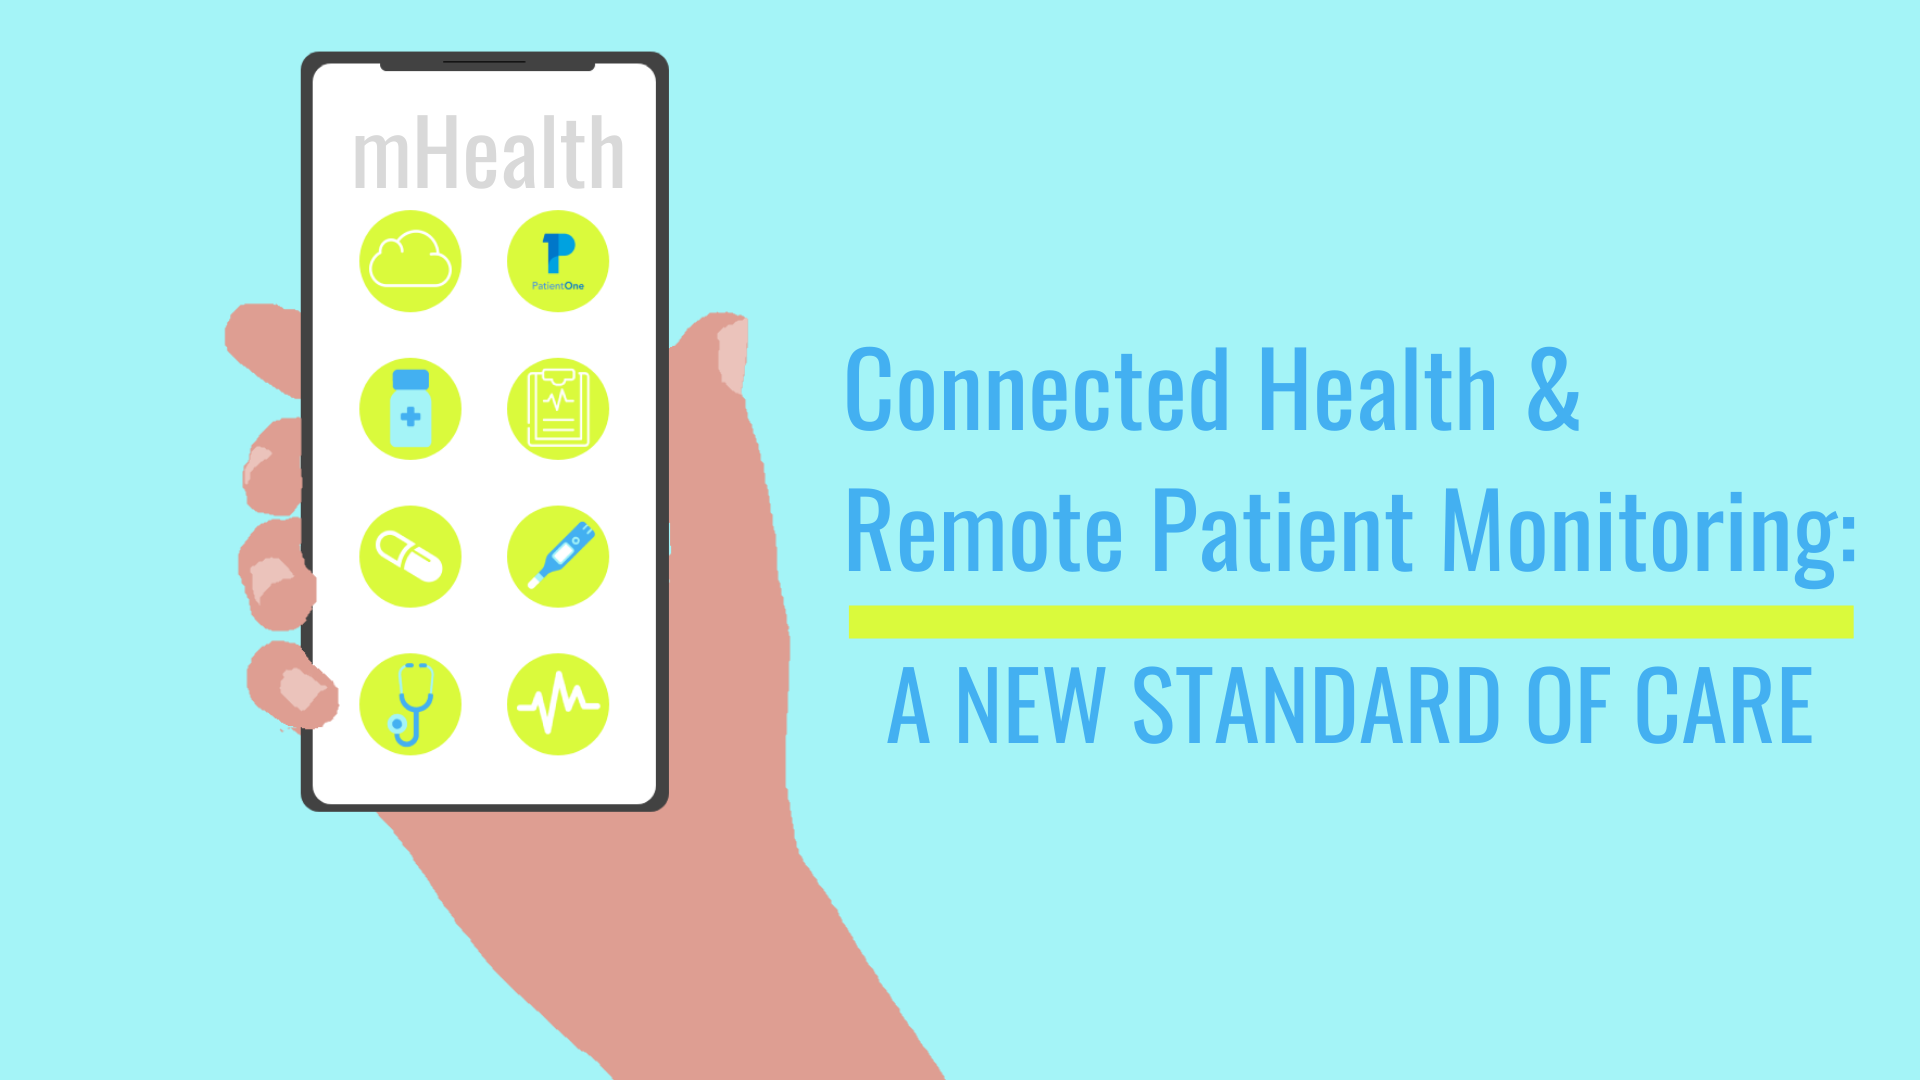 Connected Health image focusing on a new standard of care